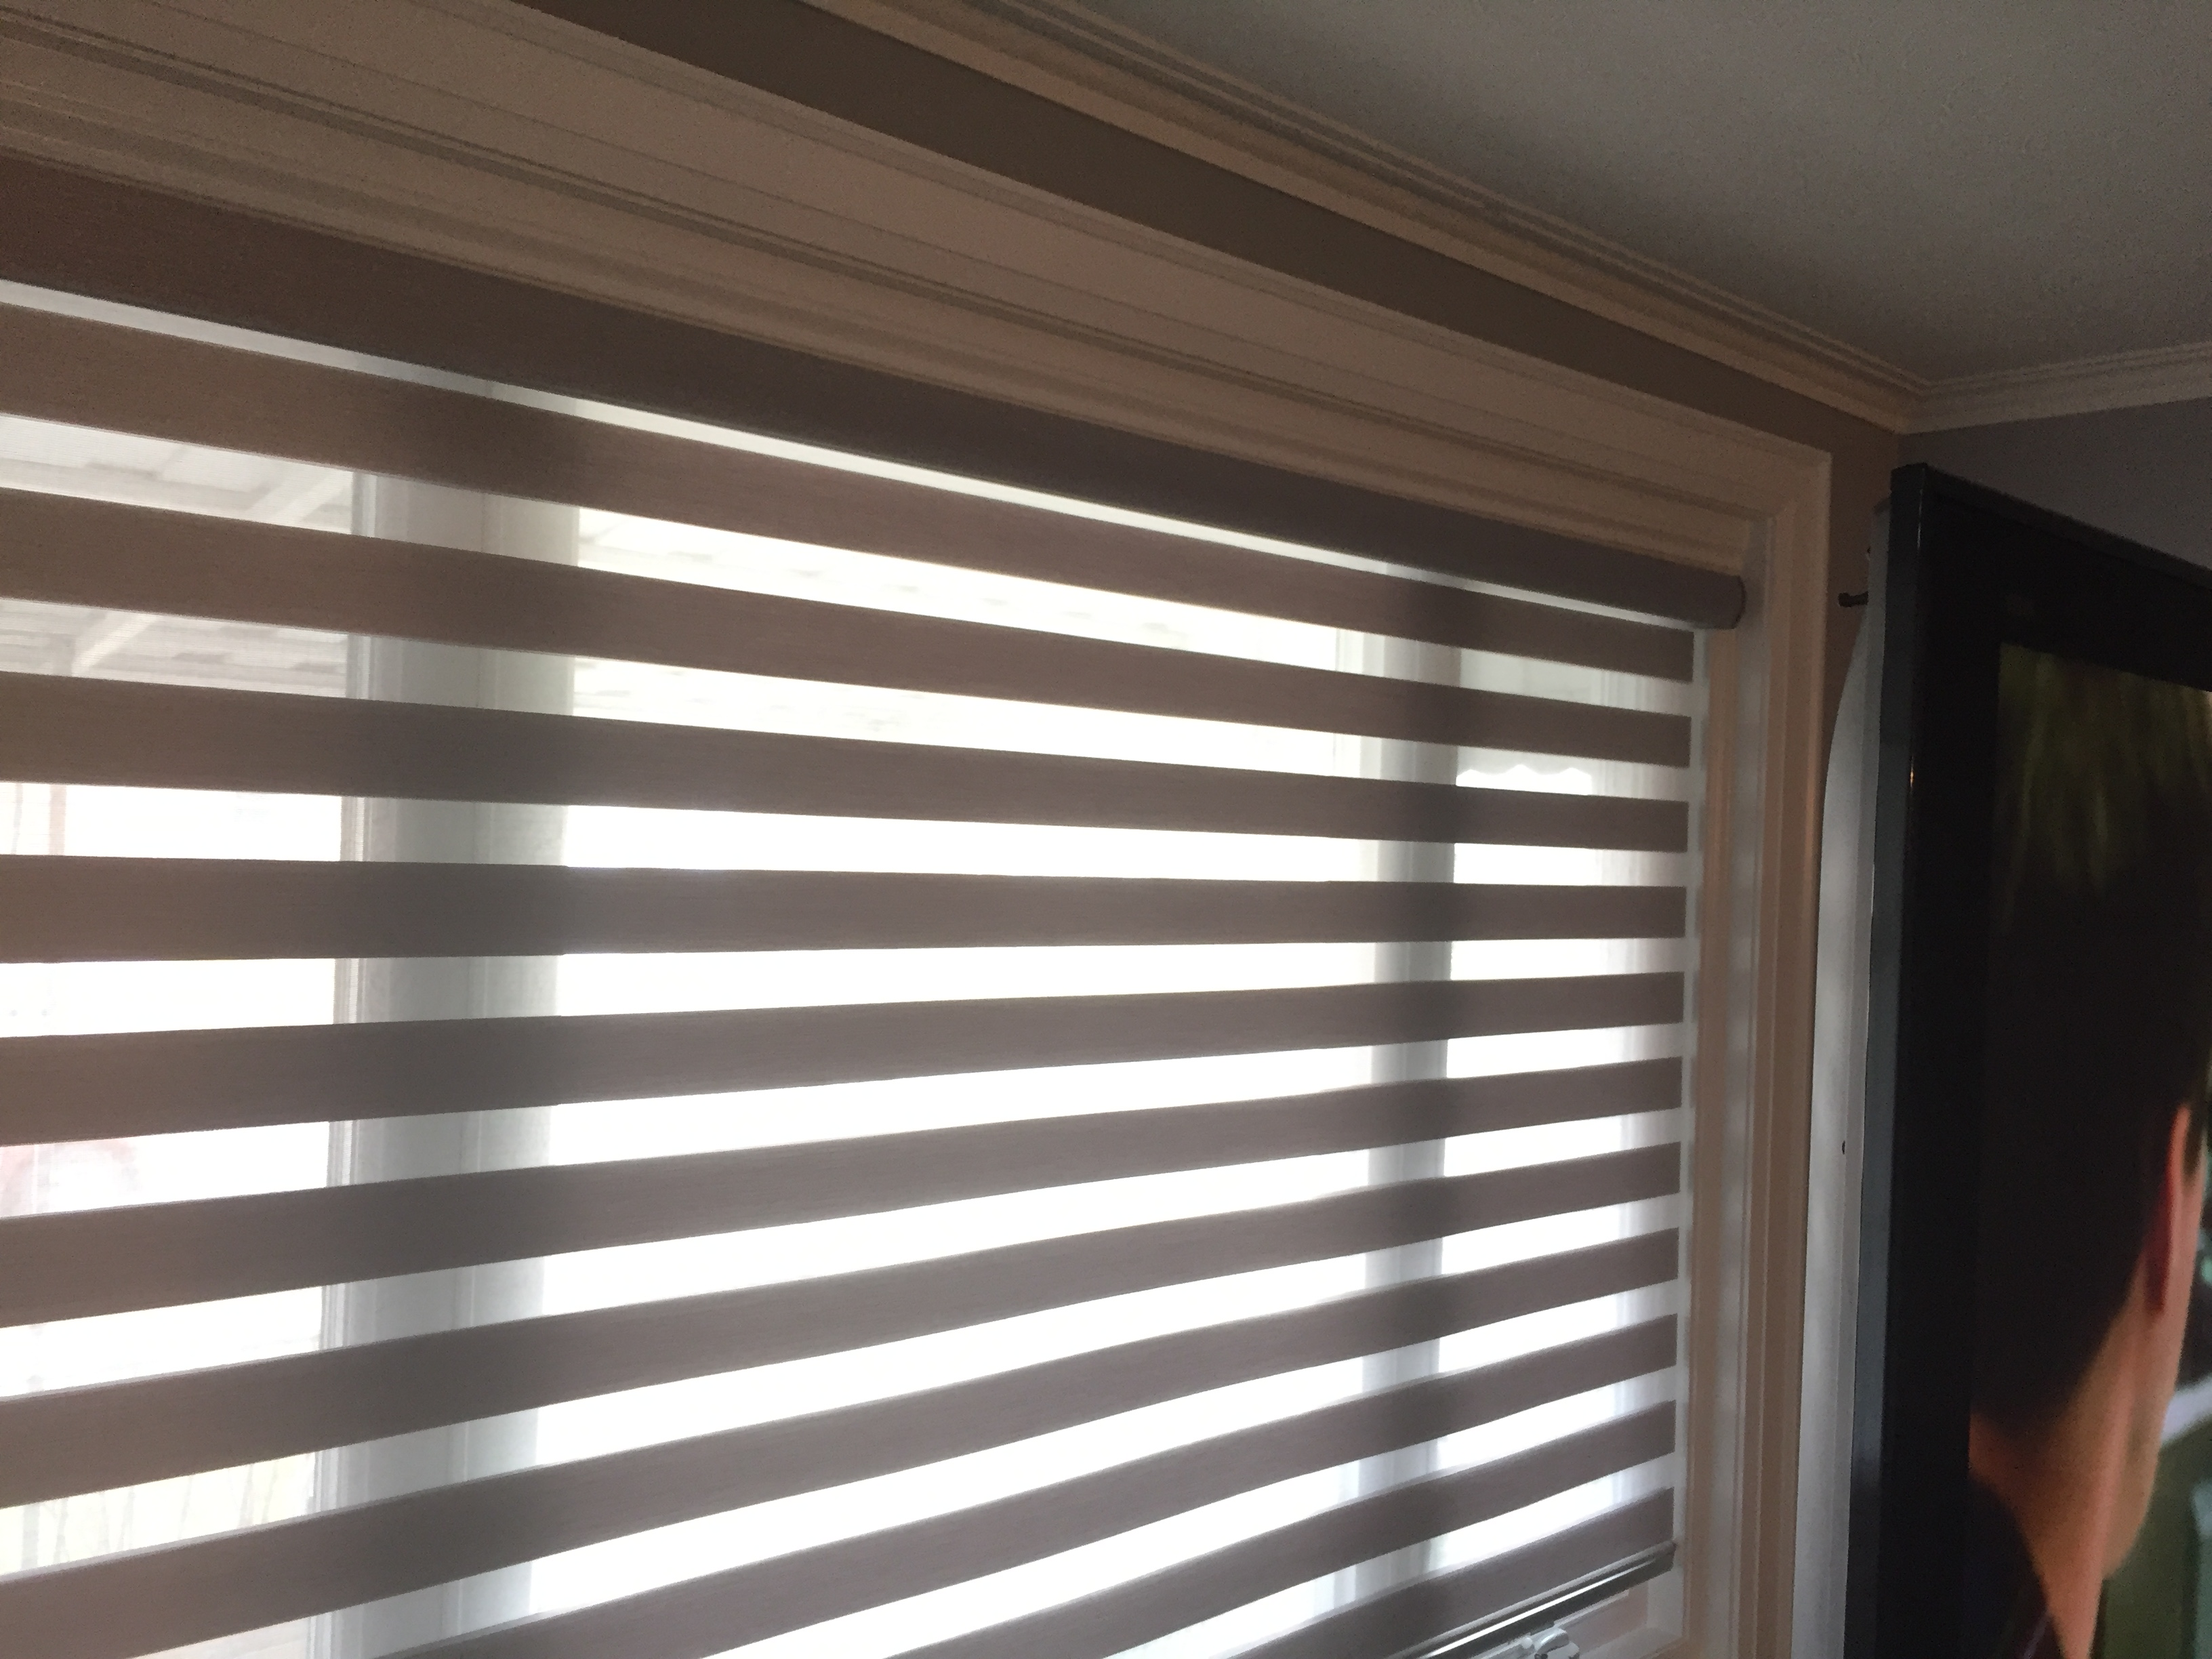 fabric bnd mackintosh banded shades drapery detail palm blinds ug